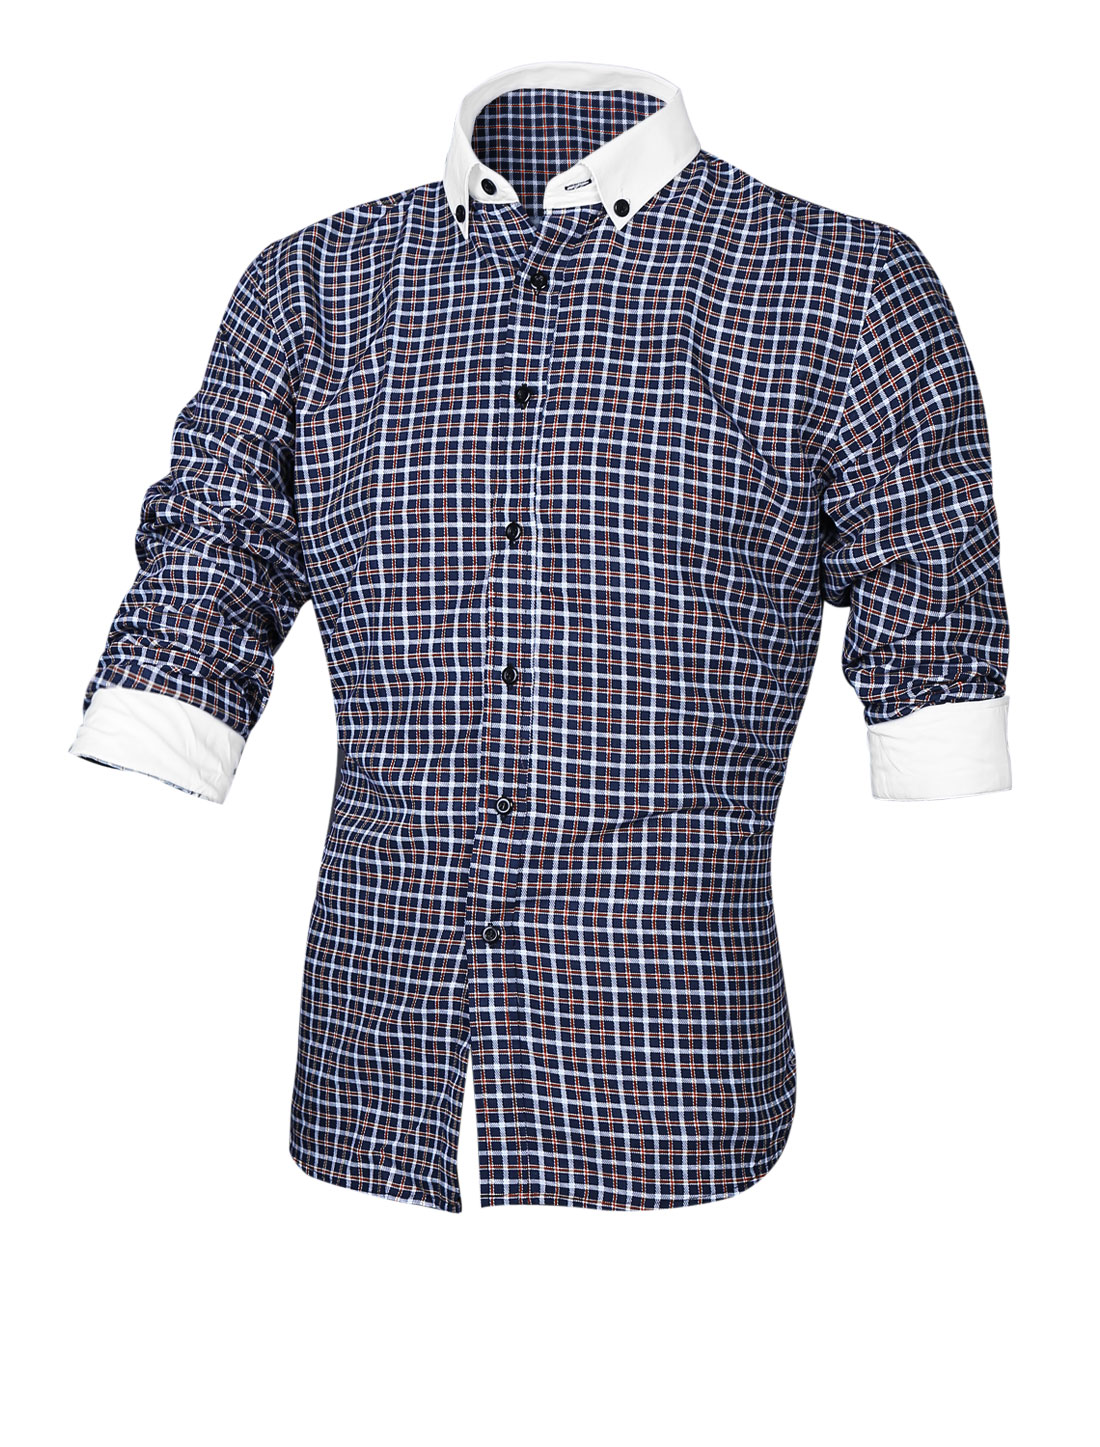 Men Plaids Pattern Button Closed Front Casual Shirt Navy Blue M